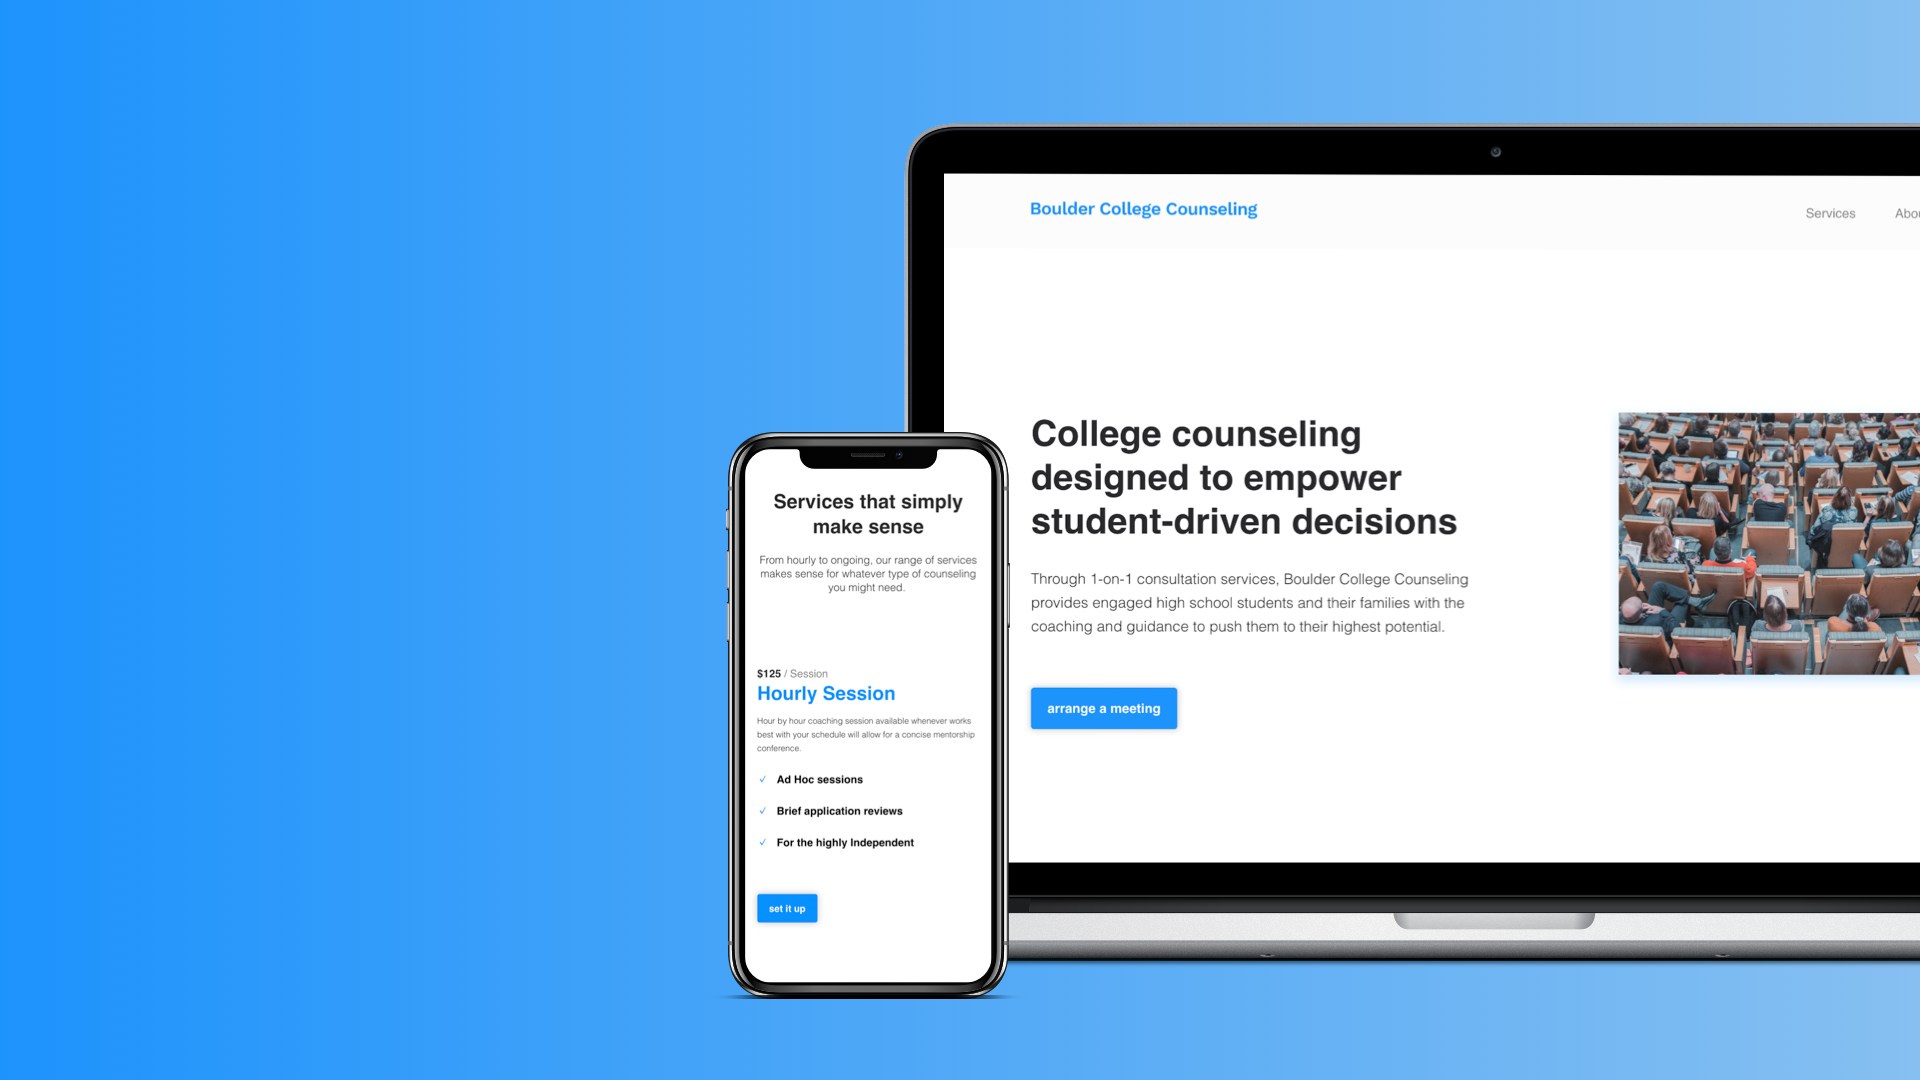 Boulder College Counseling